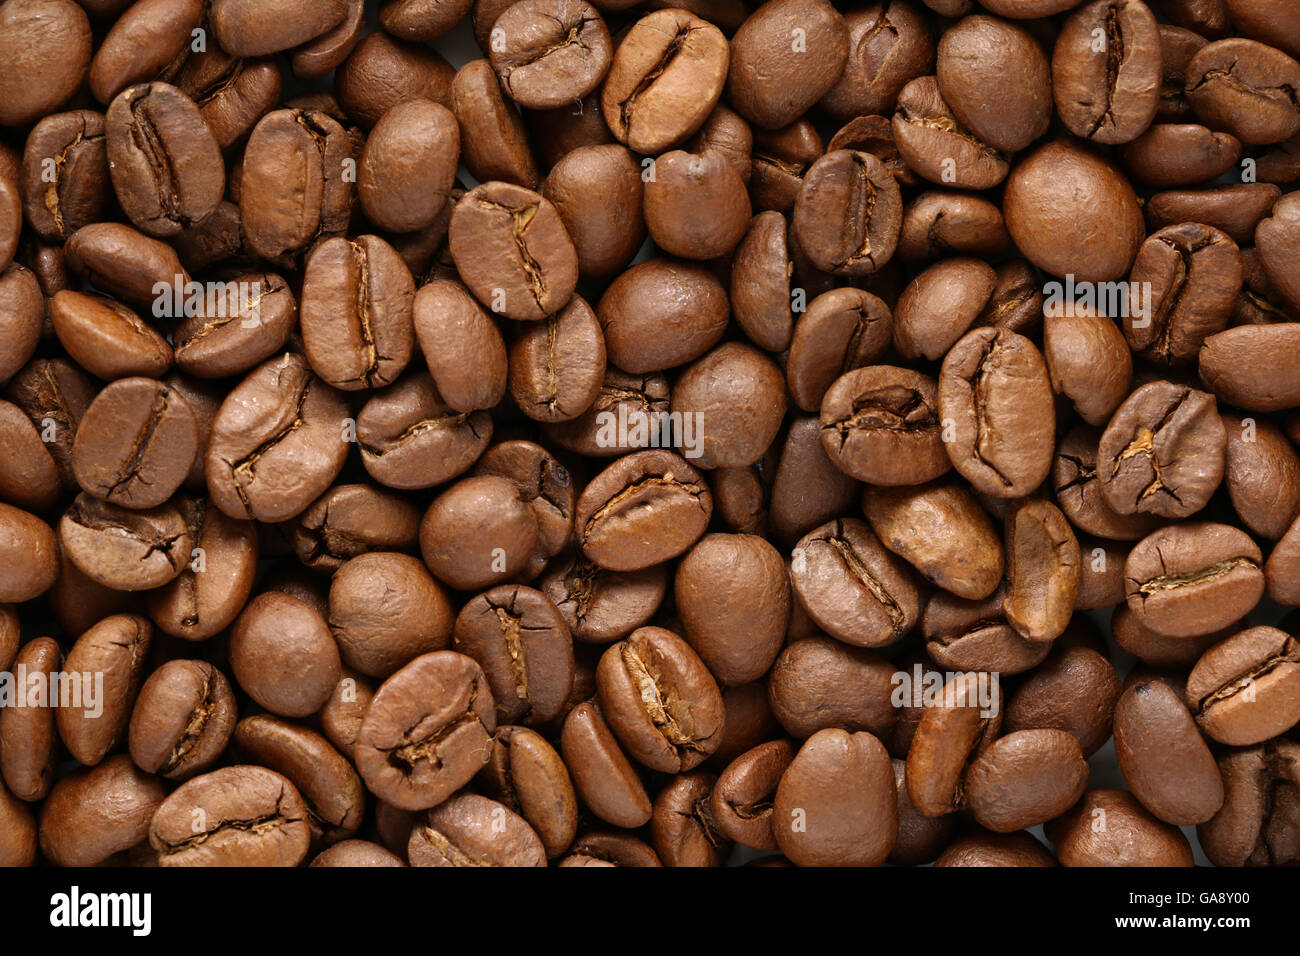 roasted coffee bean texture background - Stock Image